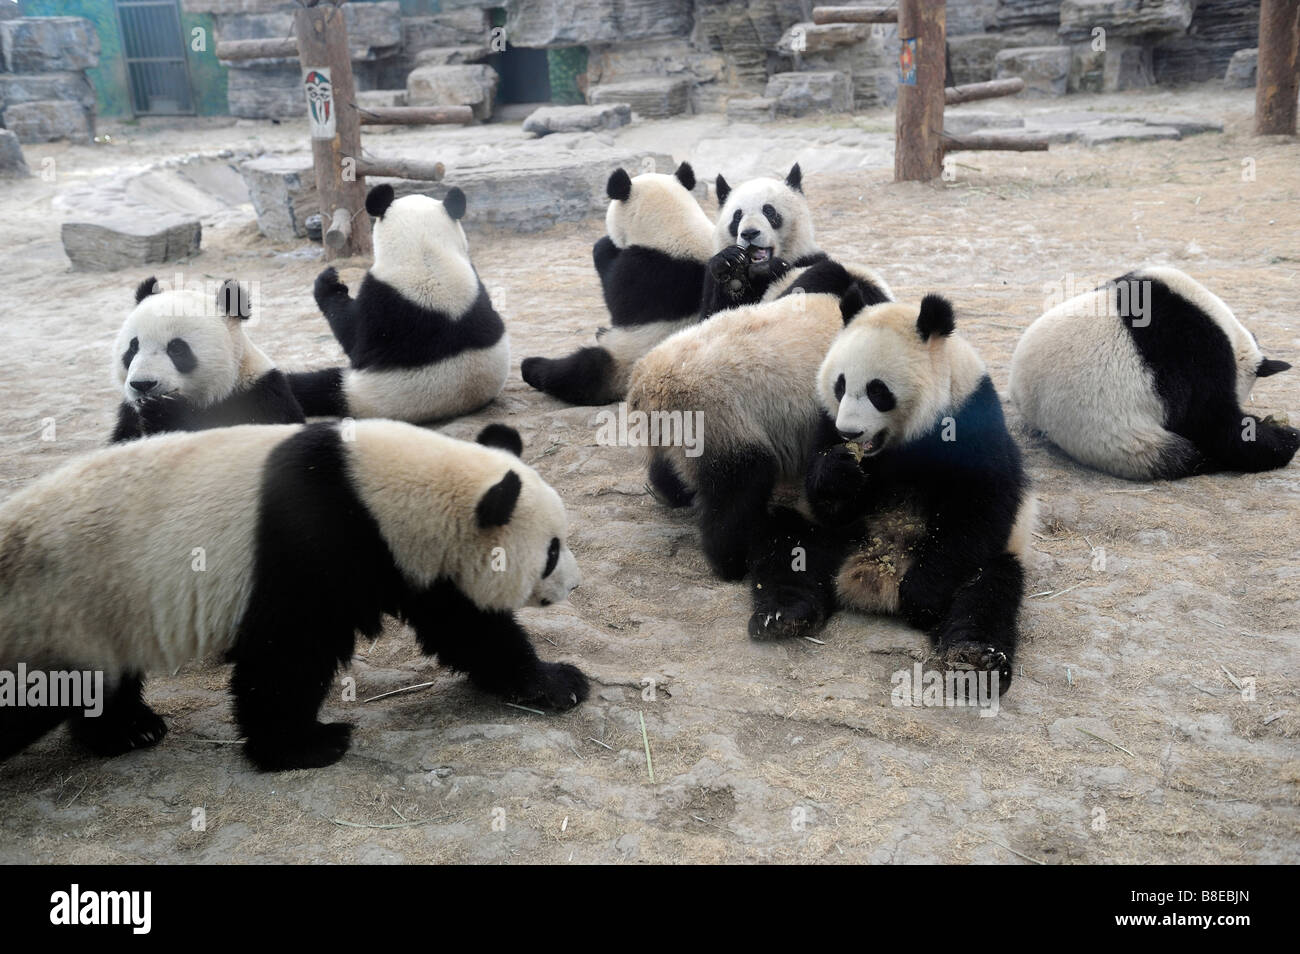 8 giant pandas from the quake-hit area feeding on steamed cornbreads at the Beijing Zoo. 19-Feb-2009 - Stock Image